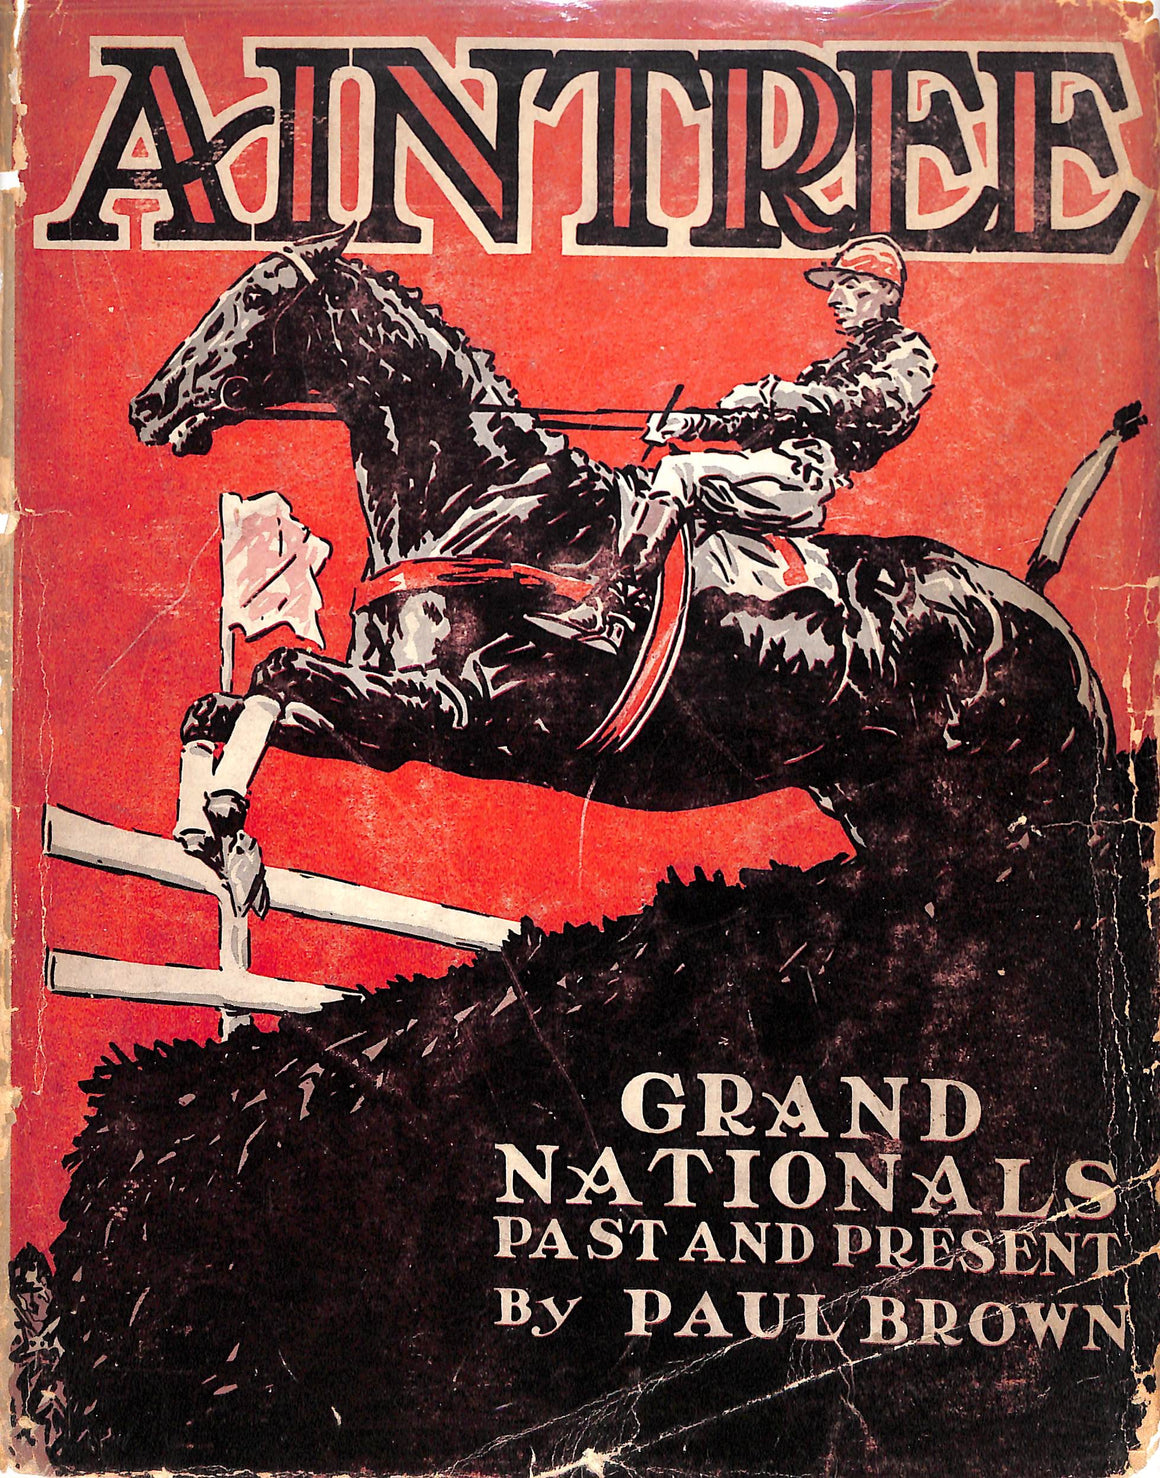 Aintree: Grand Nationals Past and Present